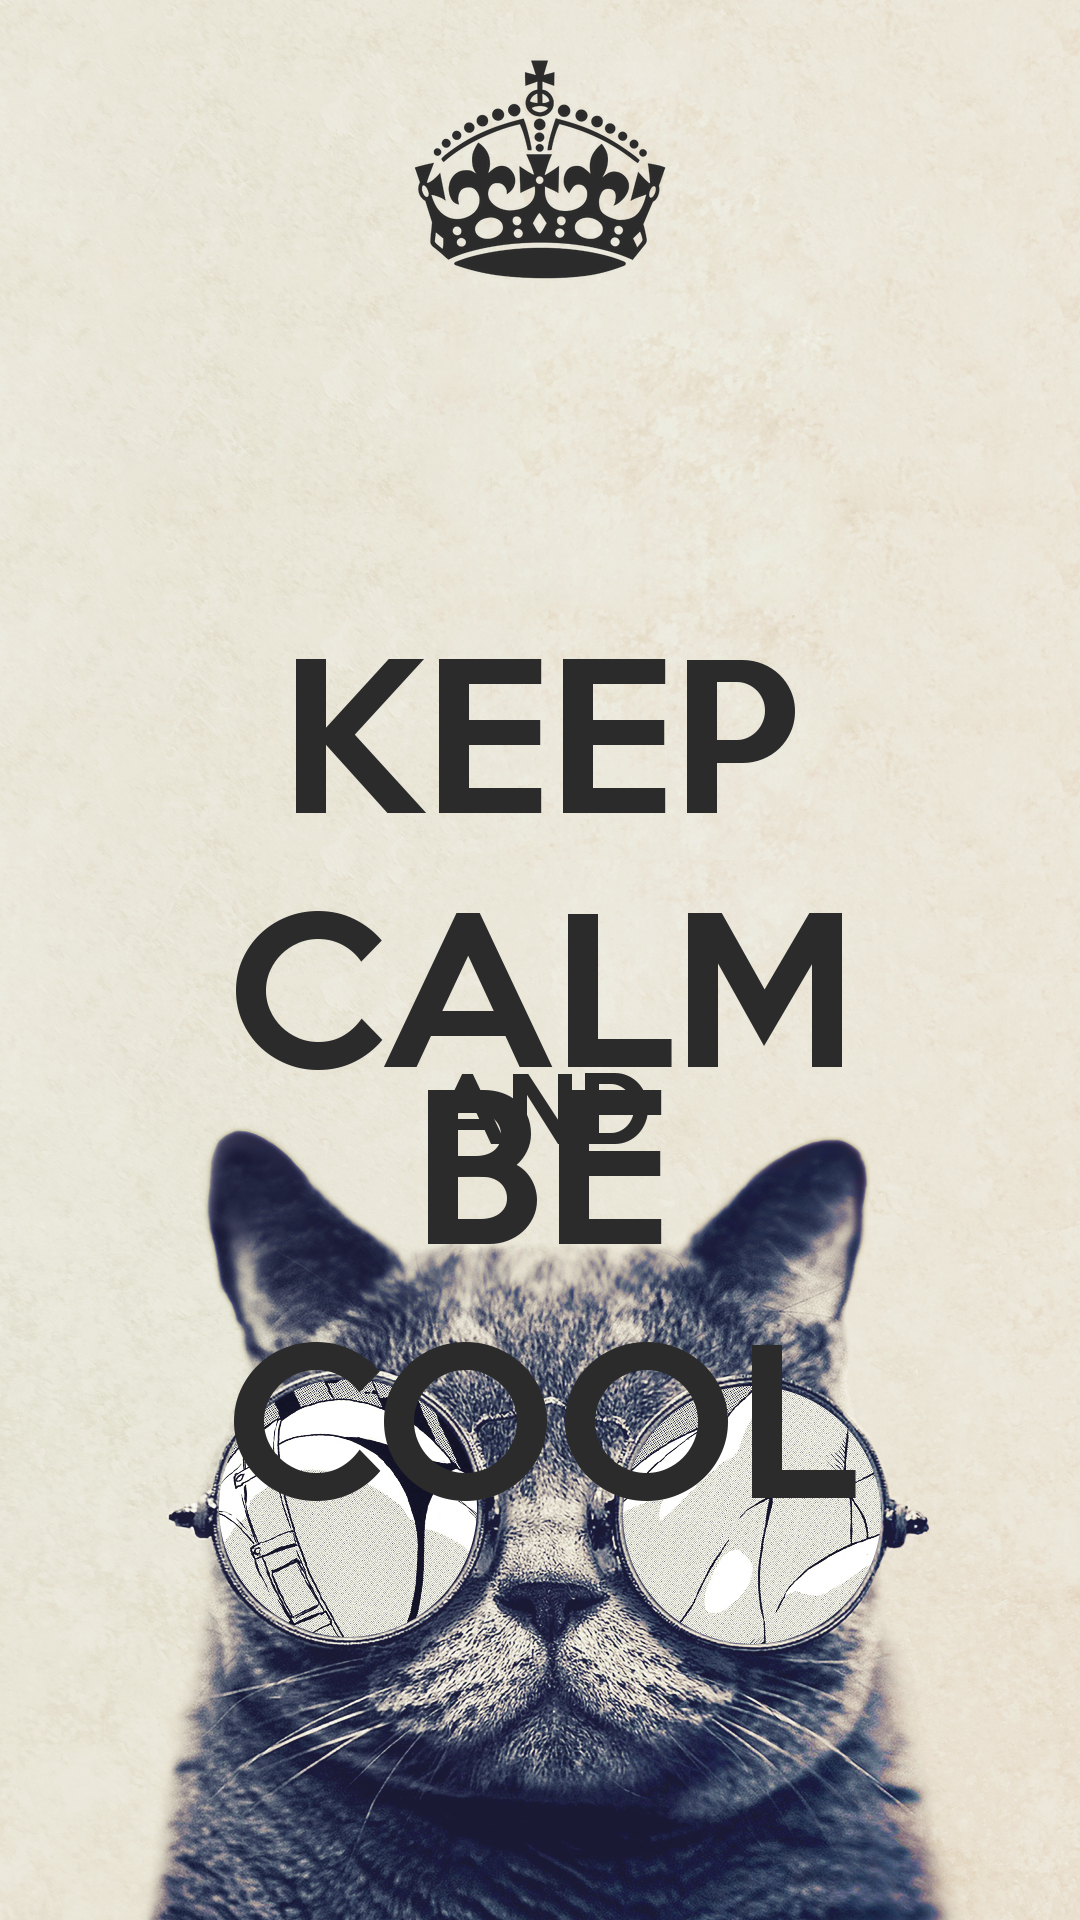 KEEP CALM AND BE COOL - KEEP CALM AND CARRY ON Image ...